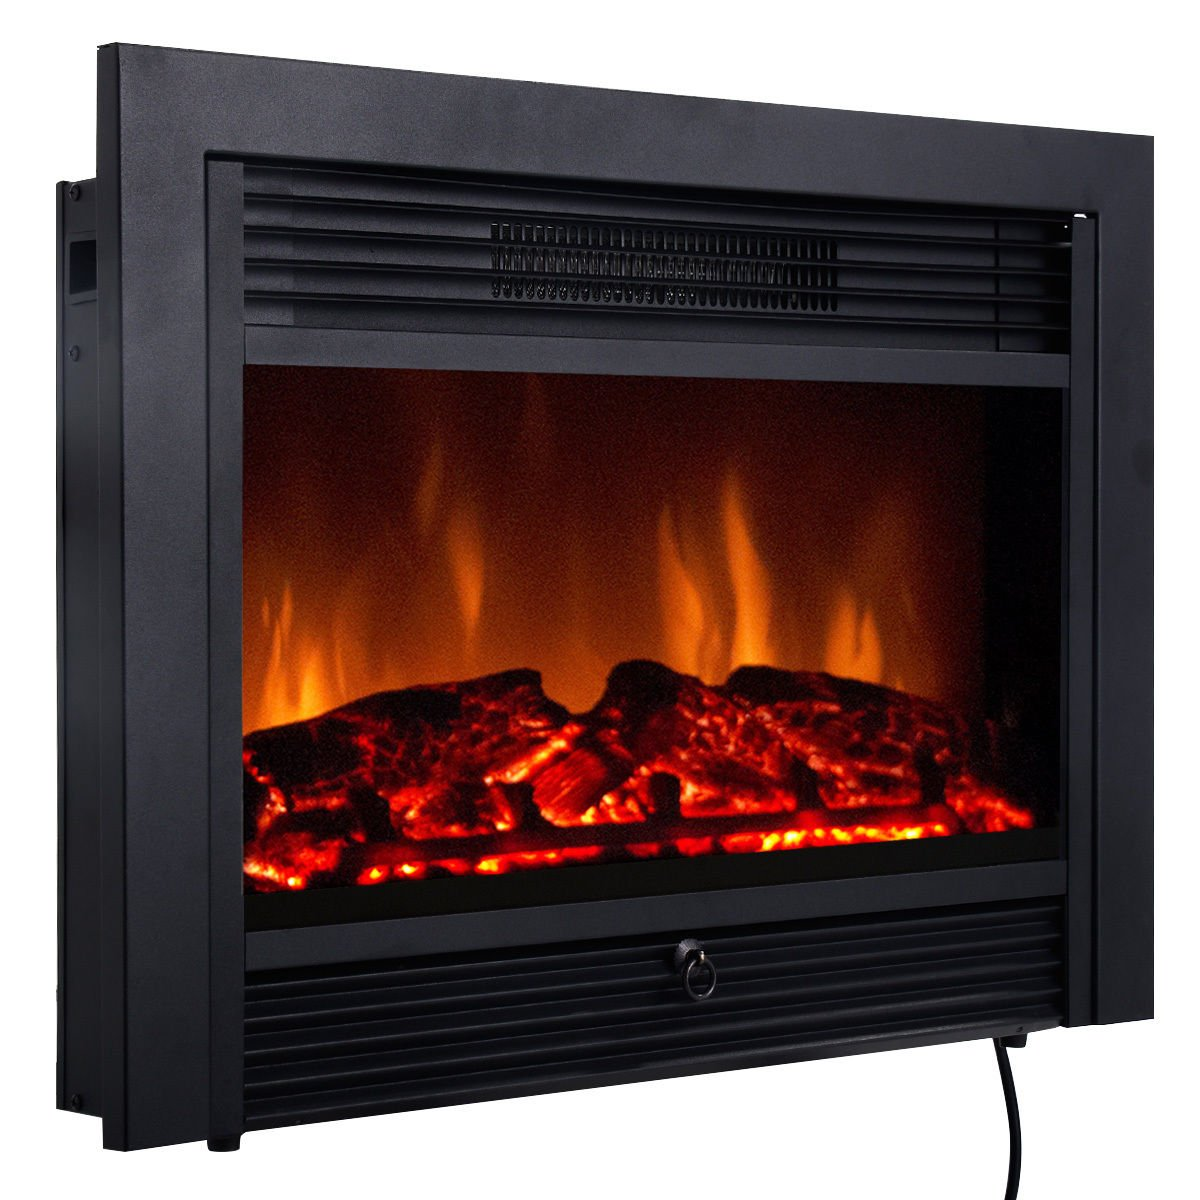 "Amazon.com: Giantex 28.5"" Electric Fireplace Insert with Heater Glass View Log Flame with Remote Control Home: Home & Kitchen"